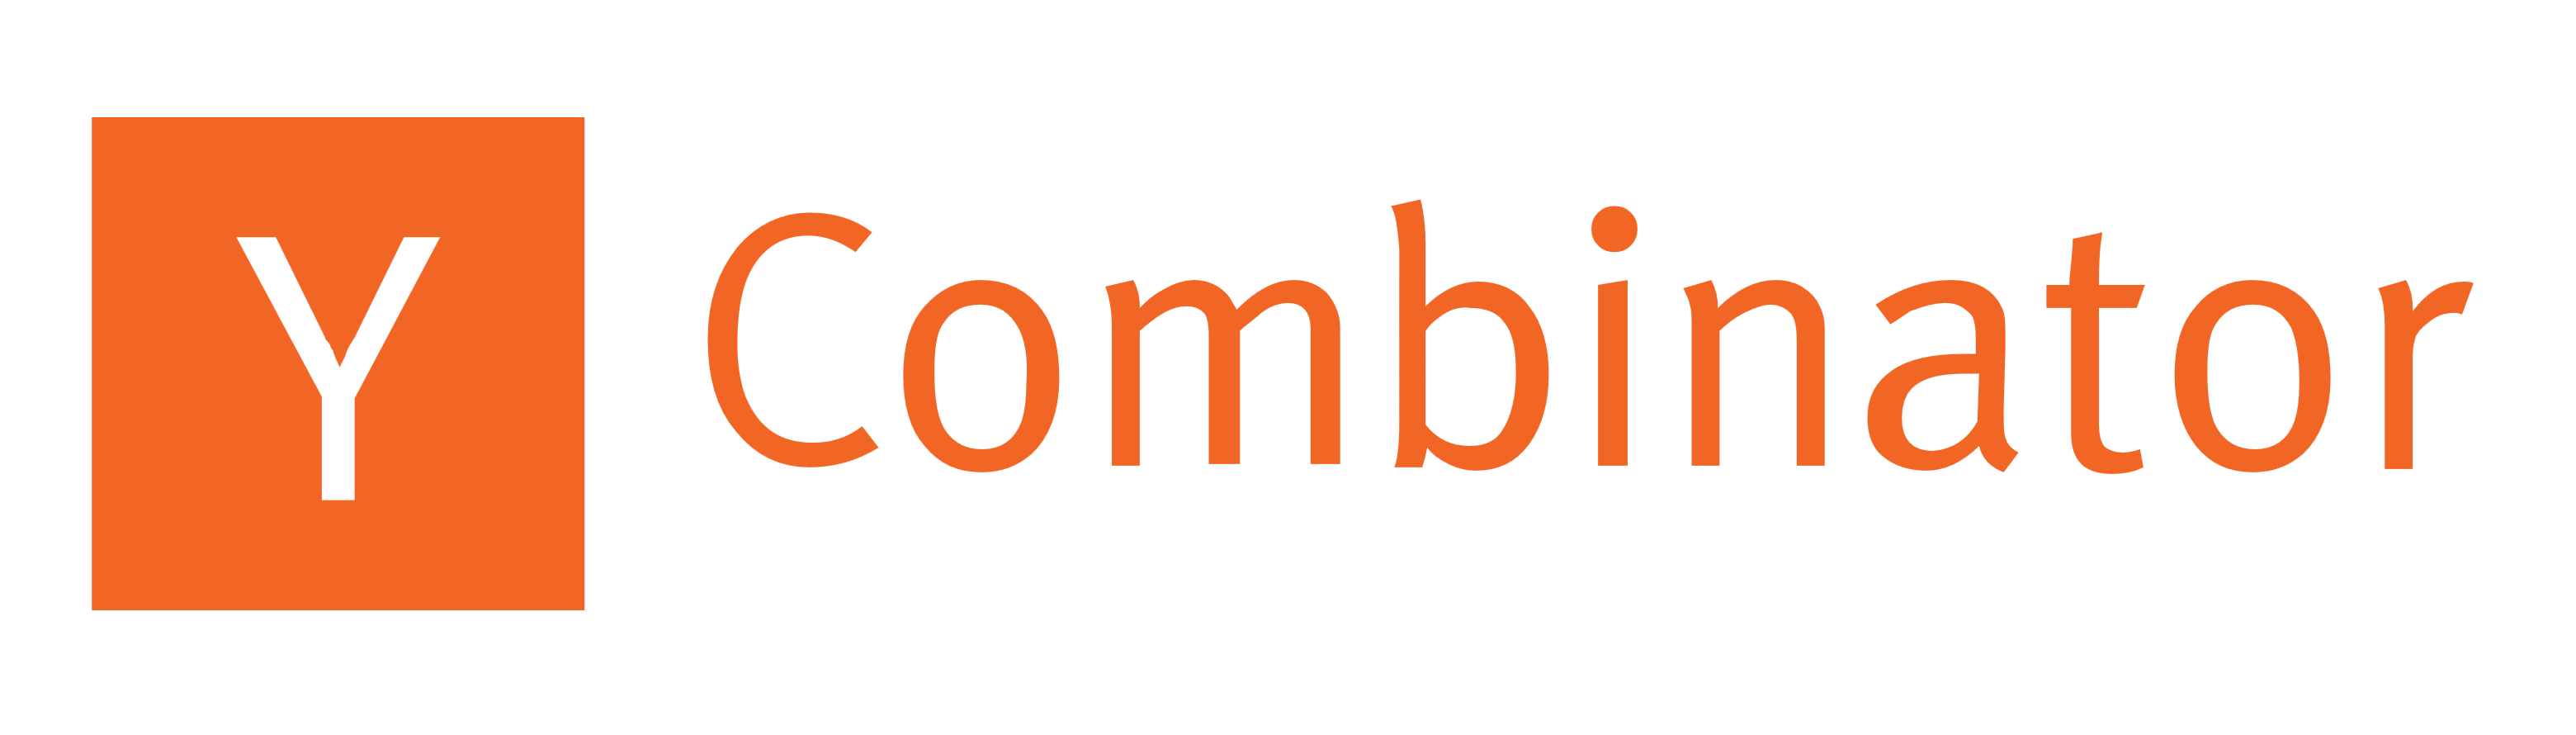 Y combinator logo text wordmark